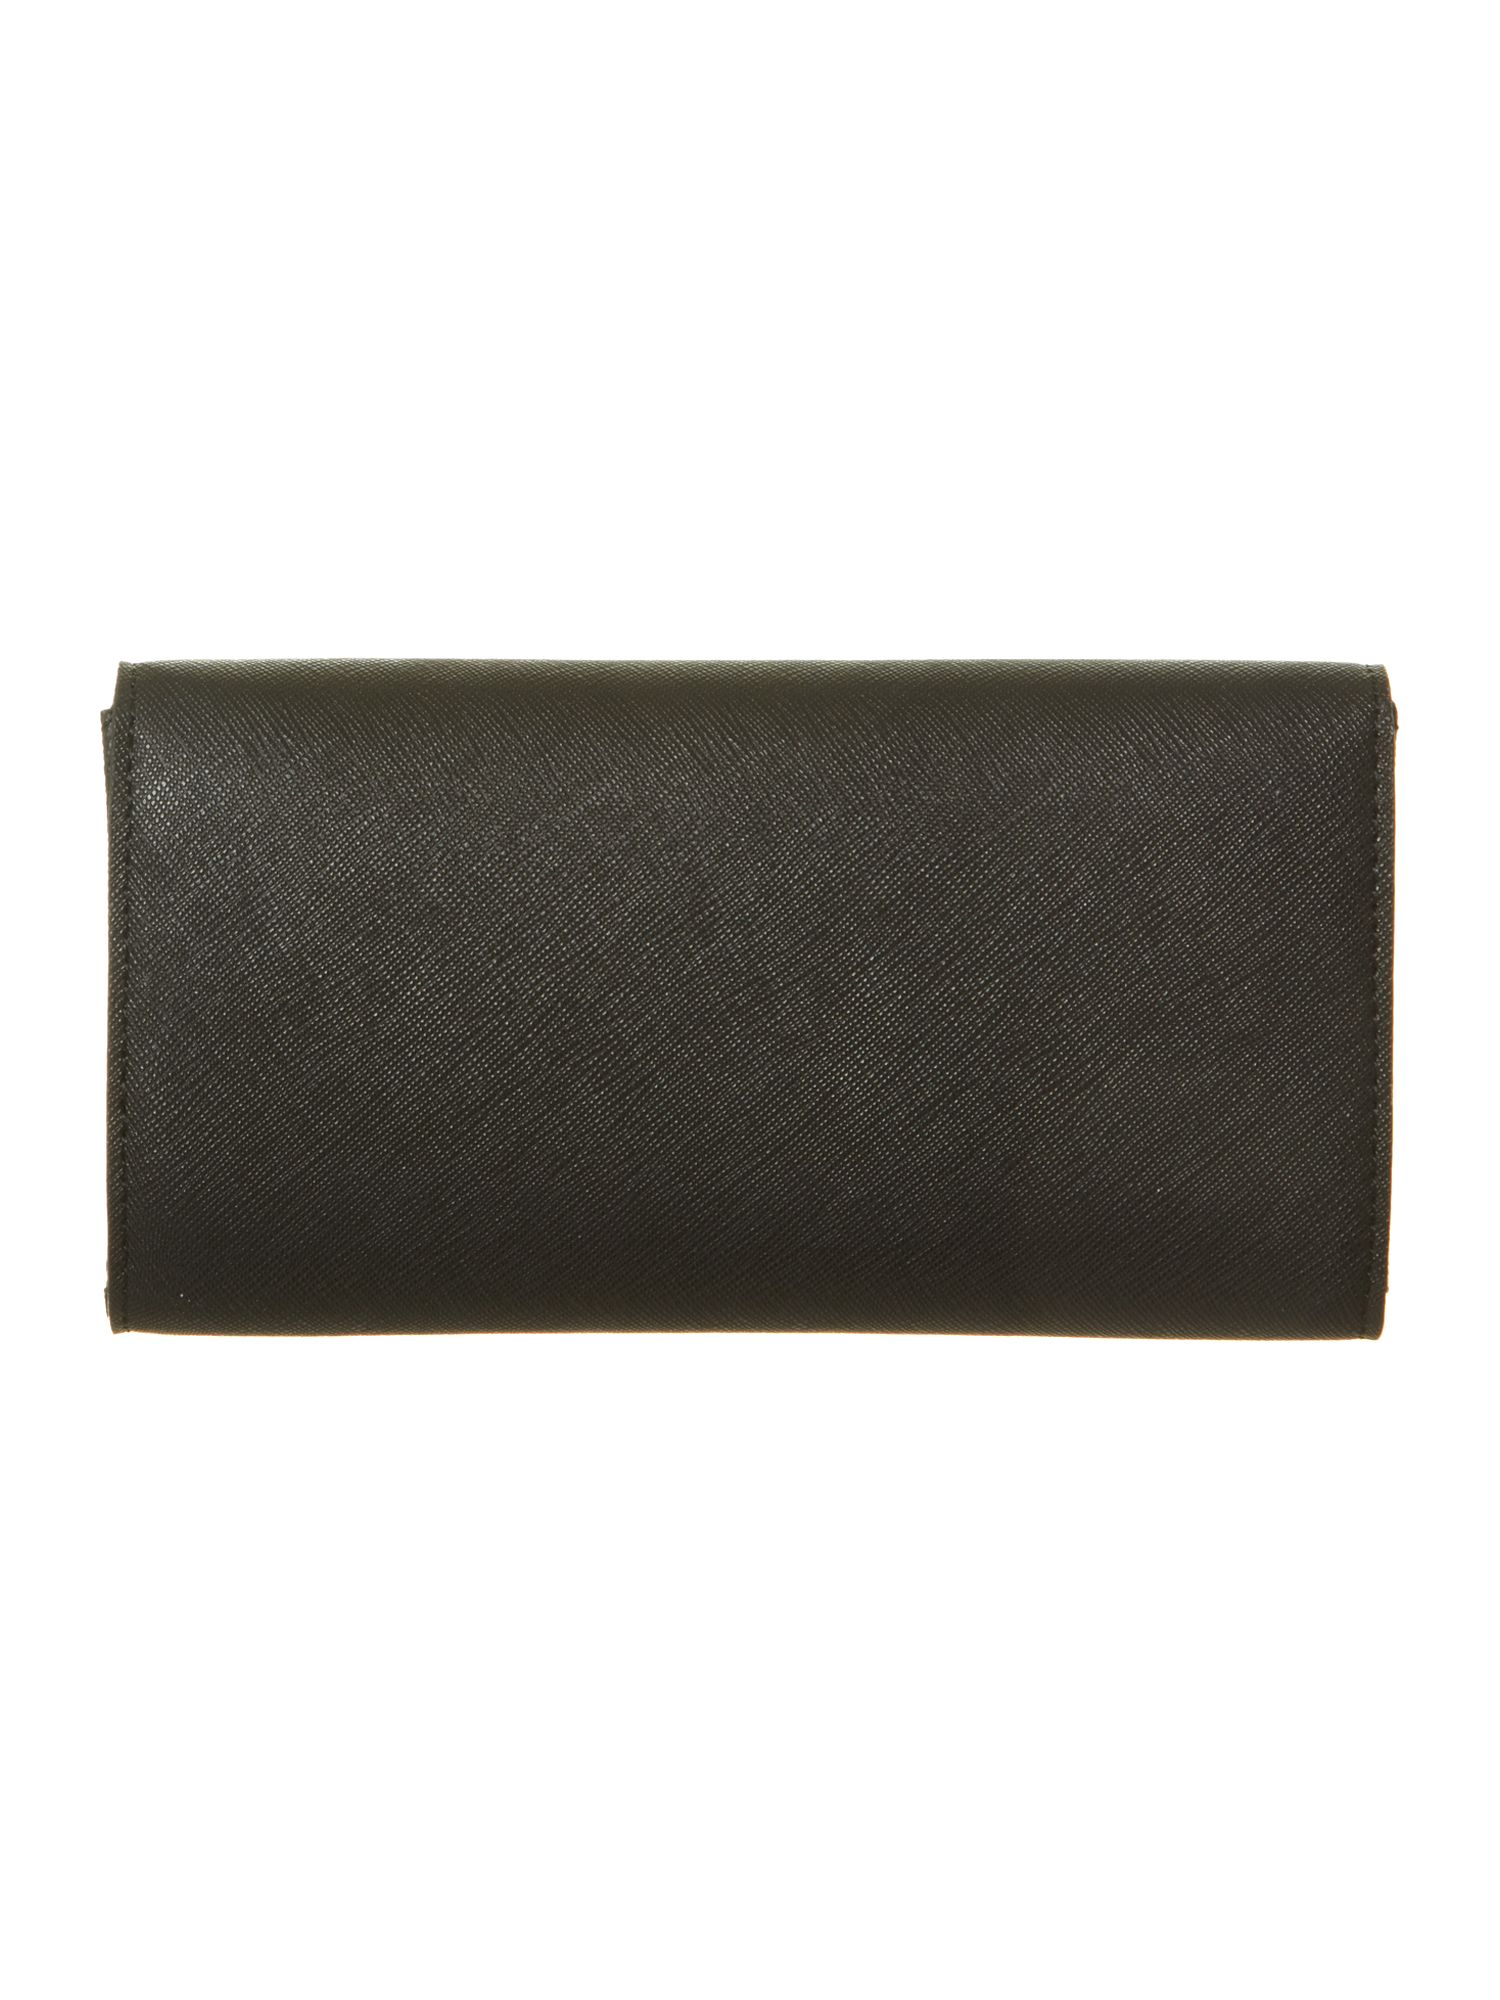 Saffiano black flap over purse